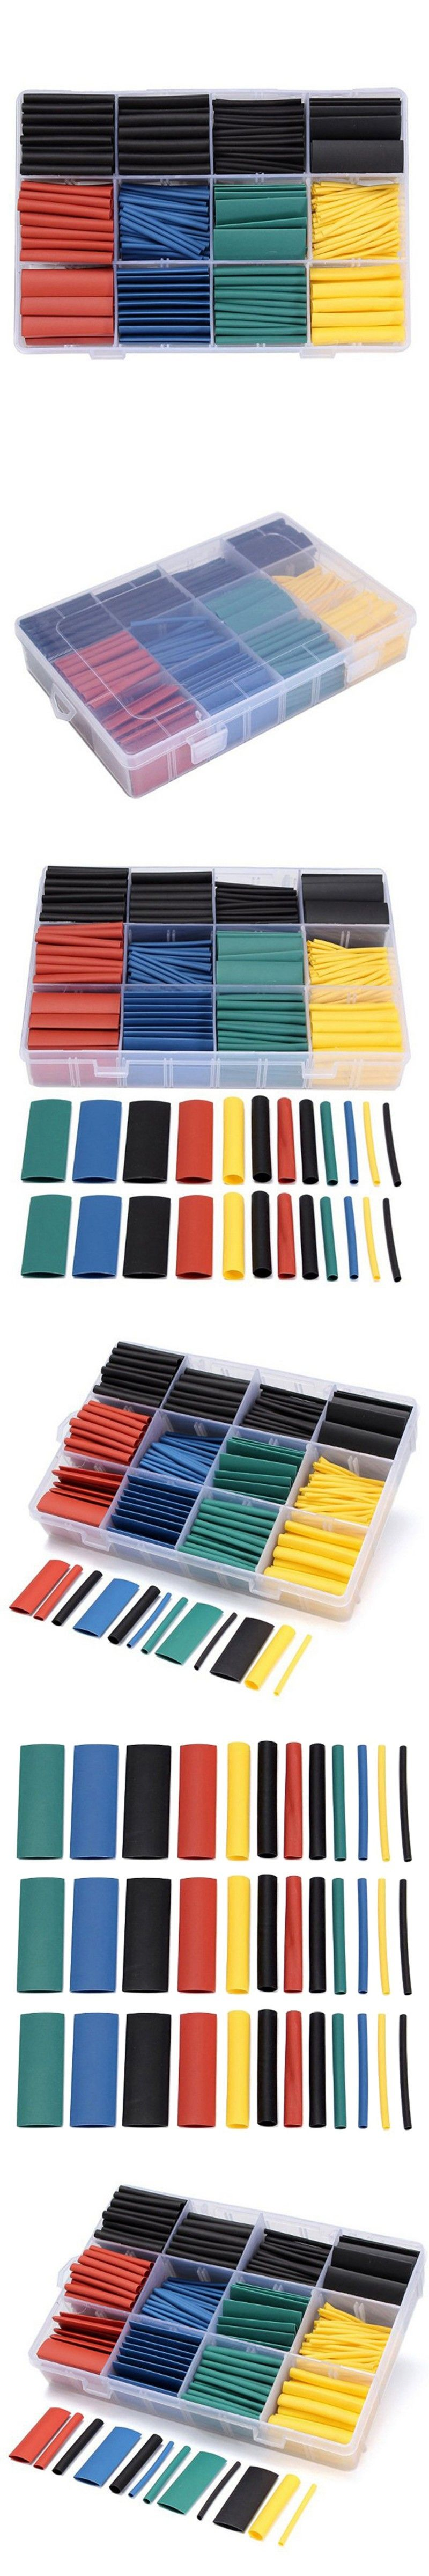 530pcs Heat Shrink Tubing Insulation Shrinkable Tube 21 Wire Cable Sleeve Wiring Harness Kit